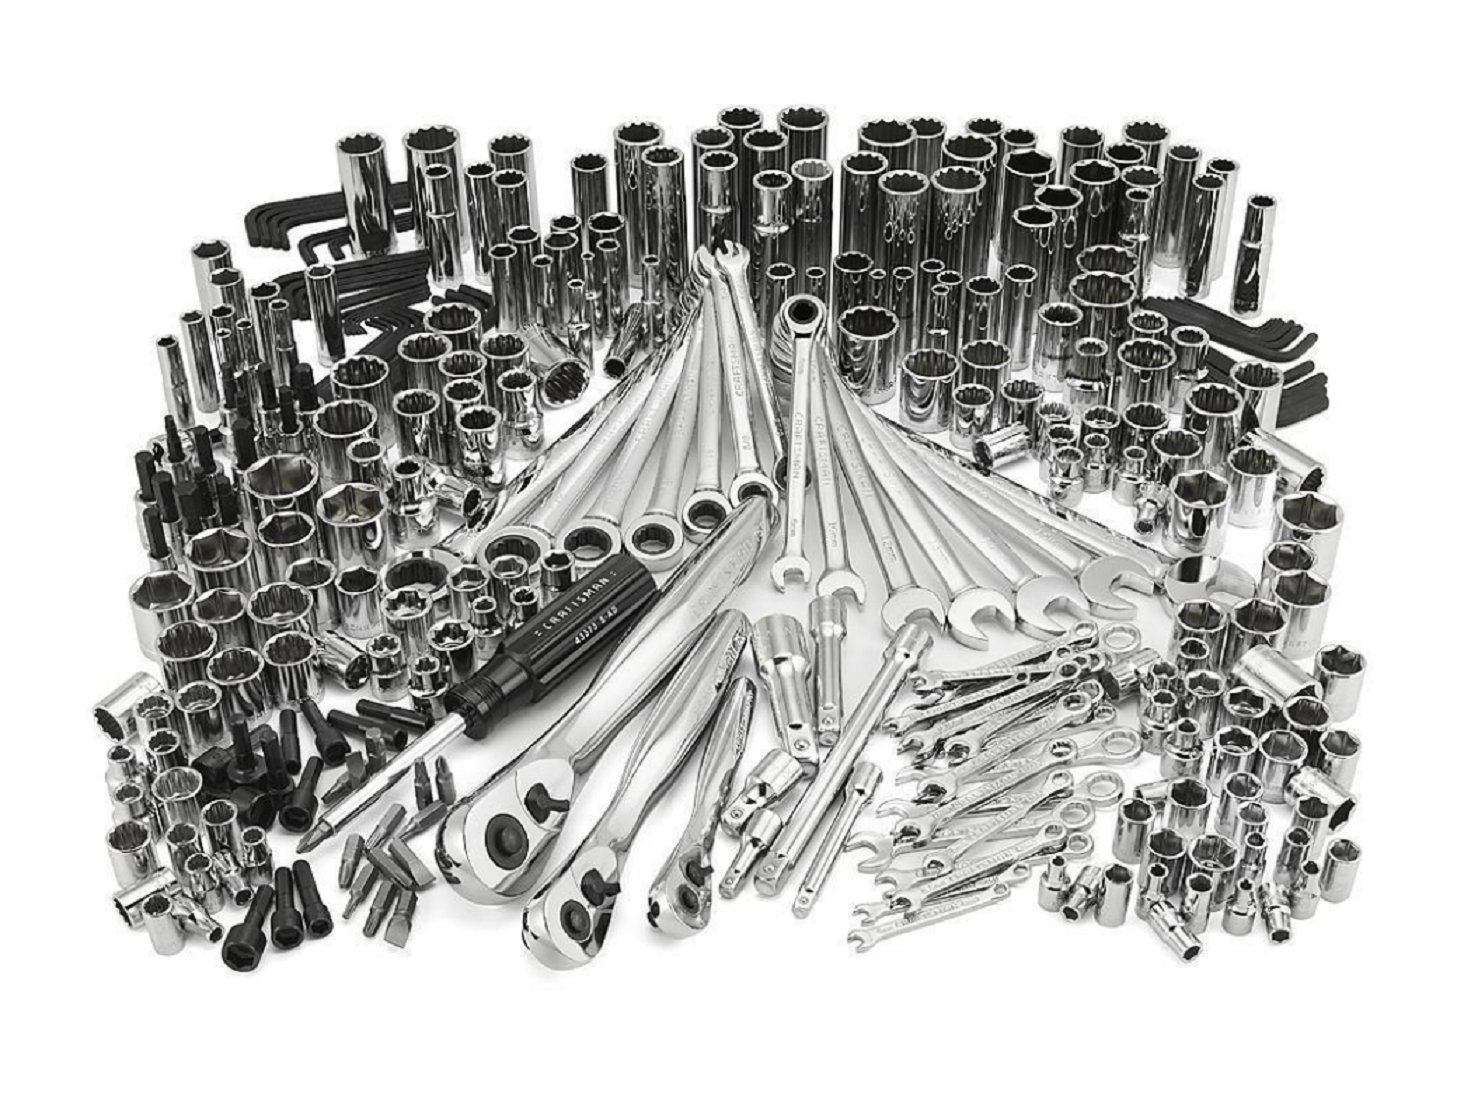 Craftsman 311 pc Mechanics Tool Set 35311 Ratcheting Combination Wrenches 334 3 days Shipping by Cherry's tools